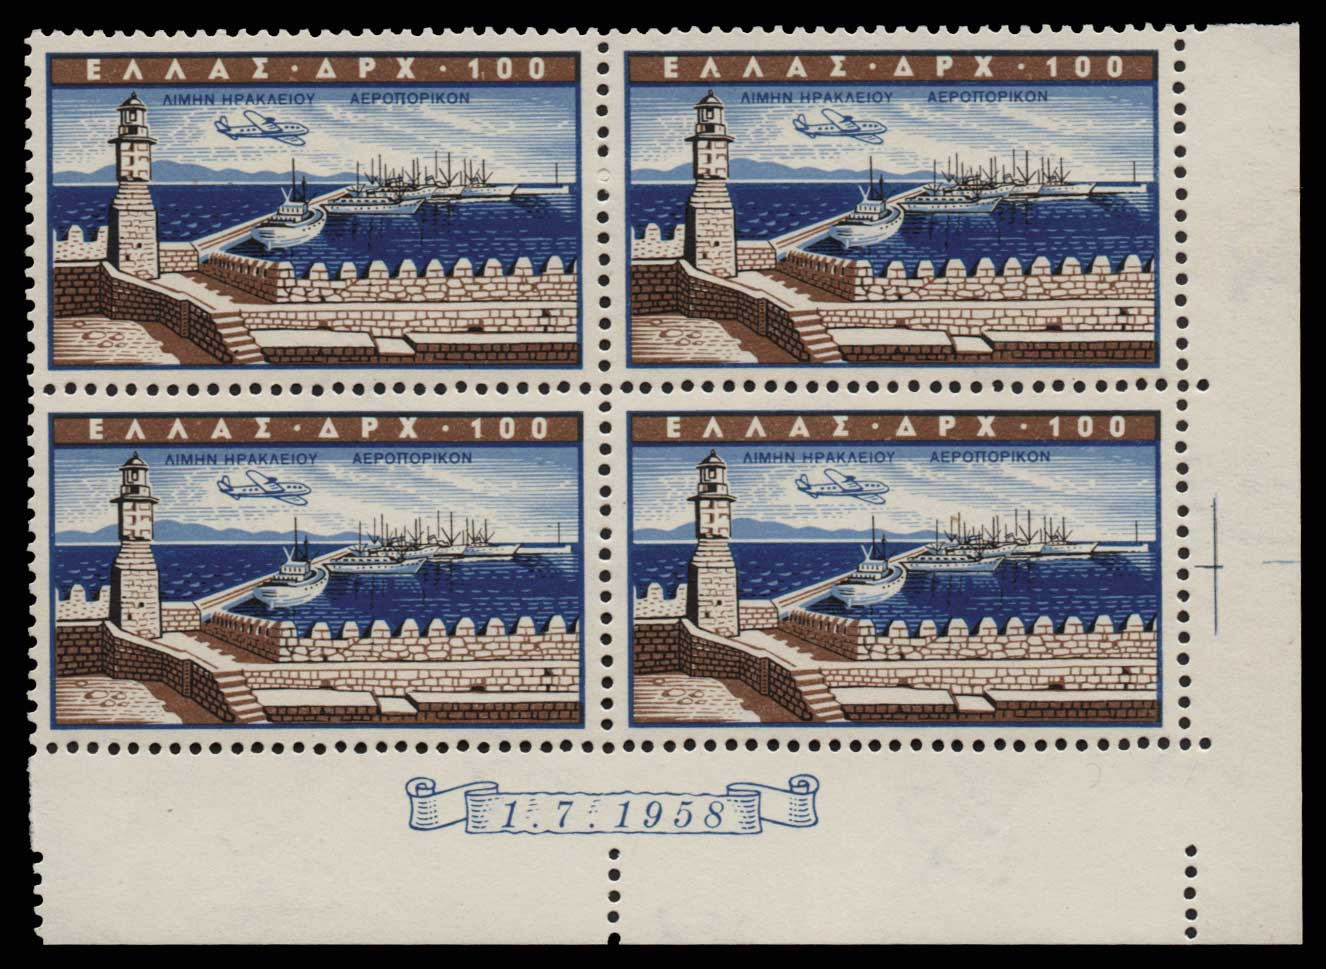 Lot 899 - -  AIR-MAIL ISSUES Air-mail issues -  Athens Auctions Public Auction 83 General Stamp Sale